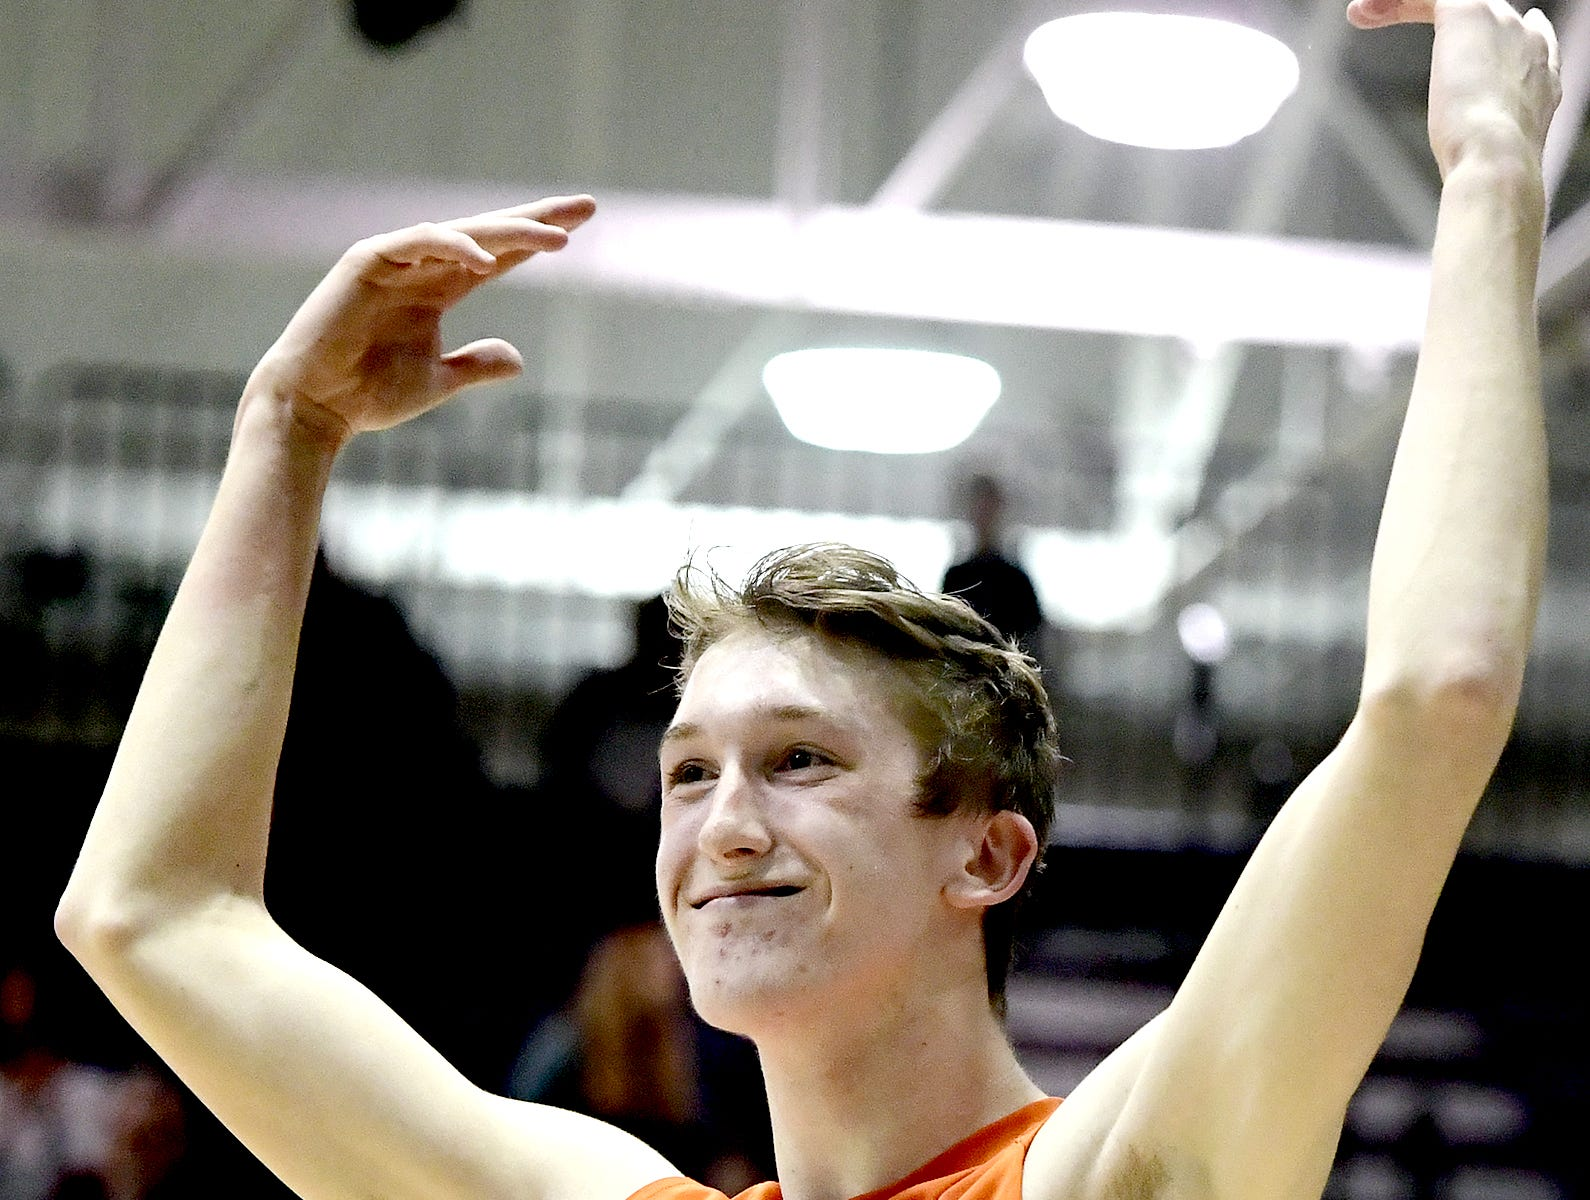 Northeastern's Alex Finch incites the crowd before game five in the York-Adams boys' volleyball championship match with Central York at Dallastown Tuesday, May 14, 2019. Bill Kalina photo